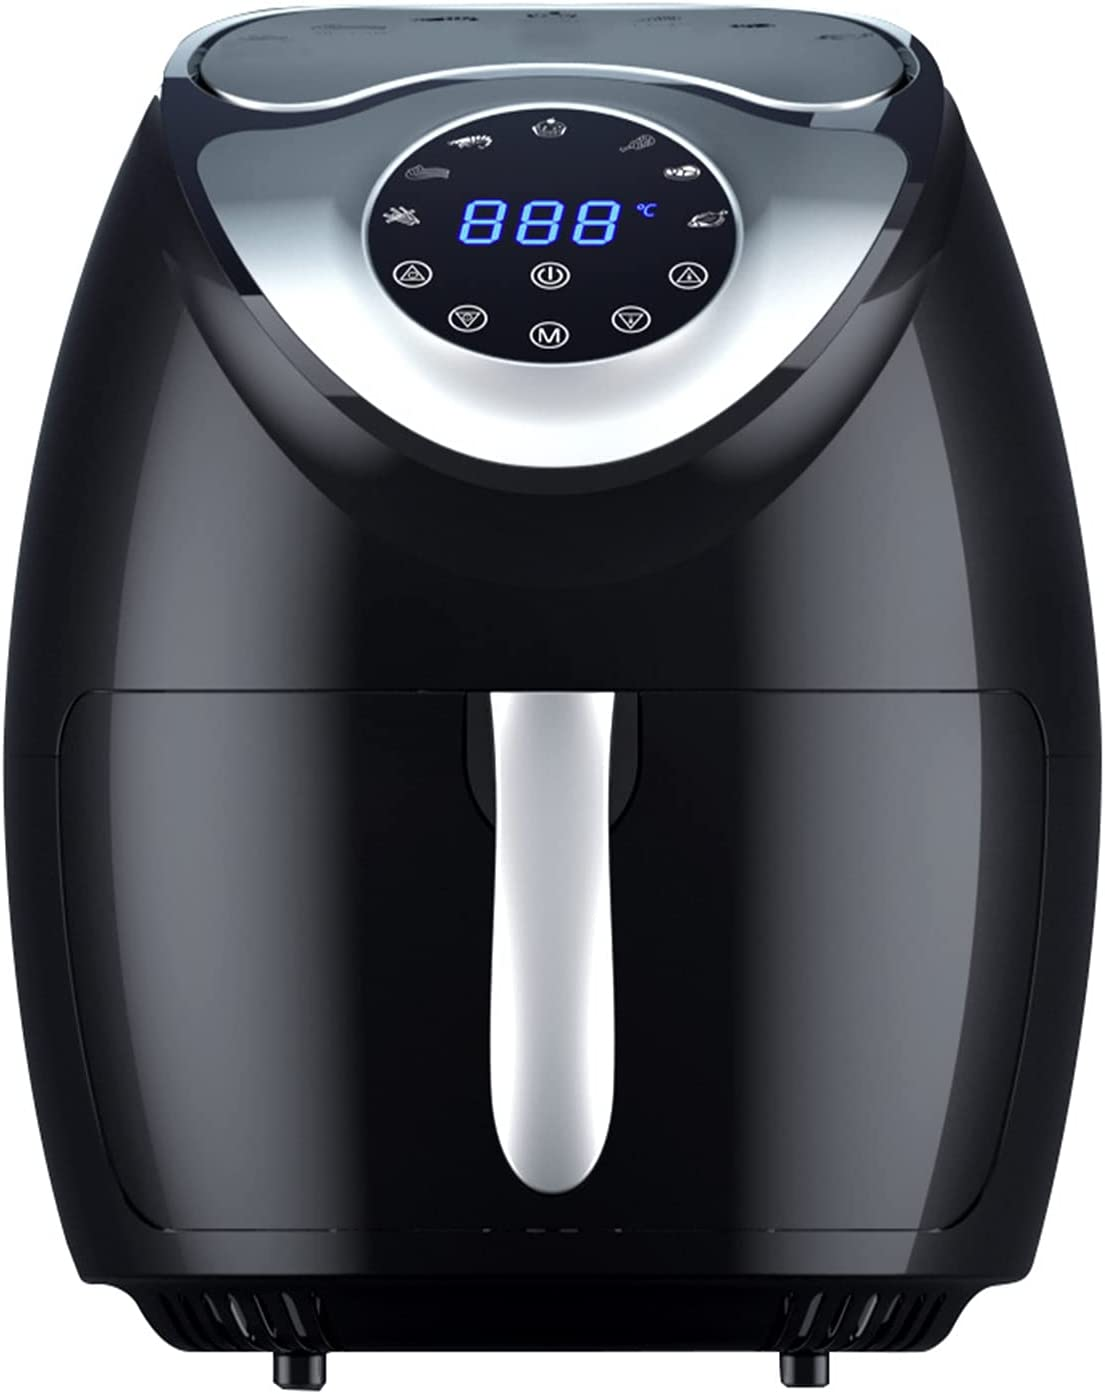 HAIMIM Air Fryer, 8 Quart Electric Hot Air Fryers with LCD Touch Screen, Oilless Oven with Eight preset functions, automatic power off ,Nonstick Basket (Black)